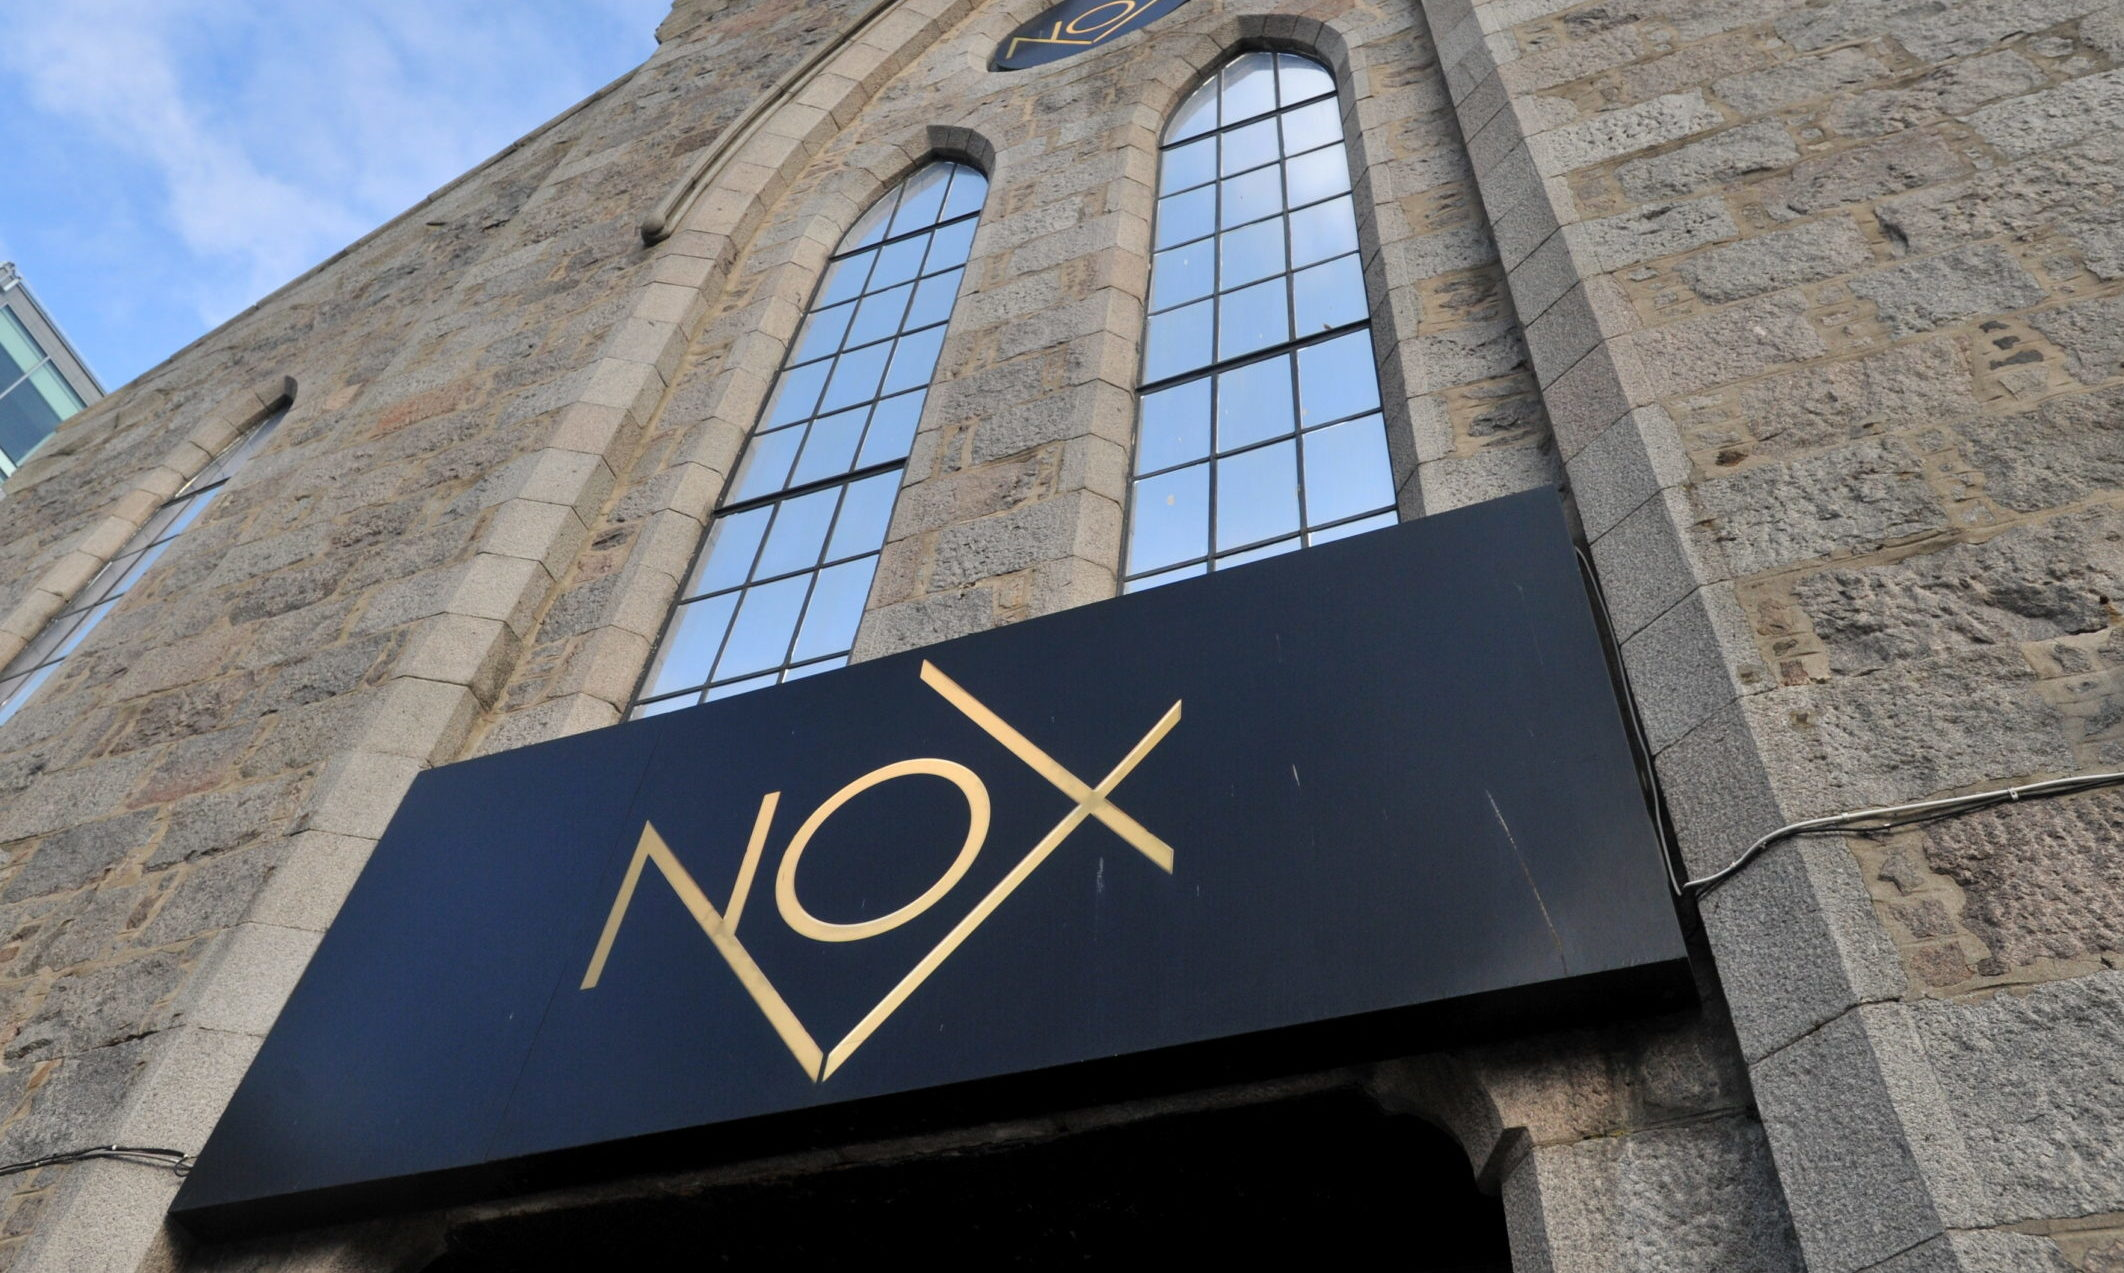 Nox nightclub, Justice Mill Lane, Aberdeen.